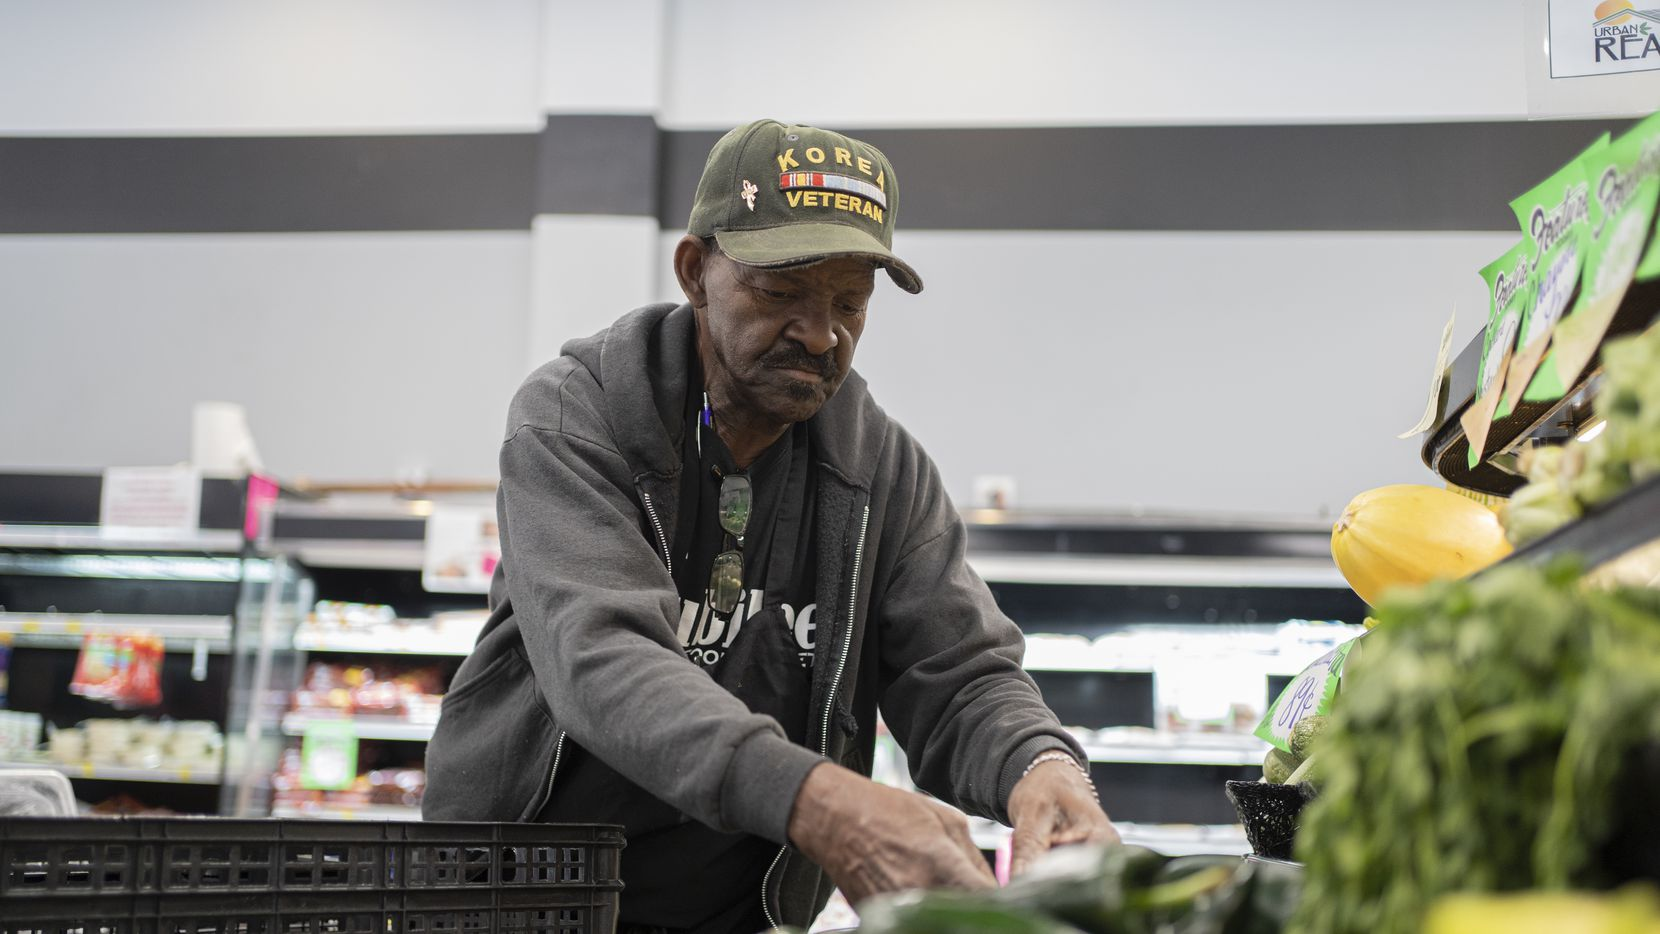 """Produce Manager David Daniels stocks vegetables at Jubilee Market, a one-of-a-kind, non-profit grocery store, just 10 minutes away from Baylor University in North Waco. Daniels grew up in this low-income neighborhood. He says Jubilee, which opened in 2016, is the first """"real"""" grocery store for this community."""